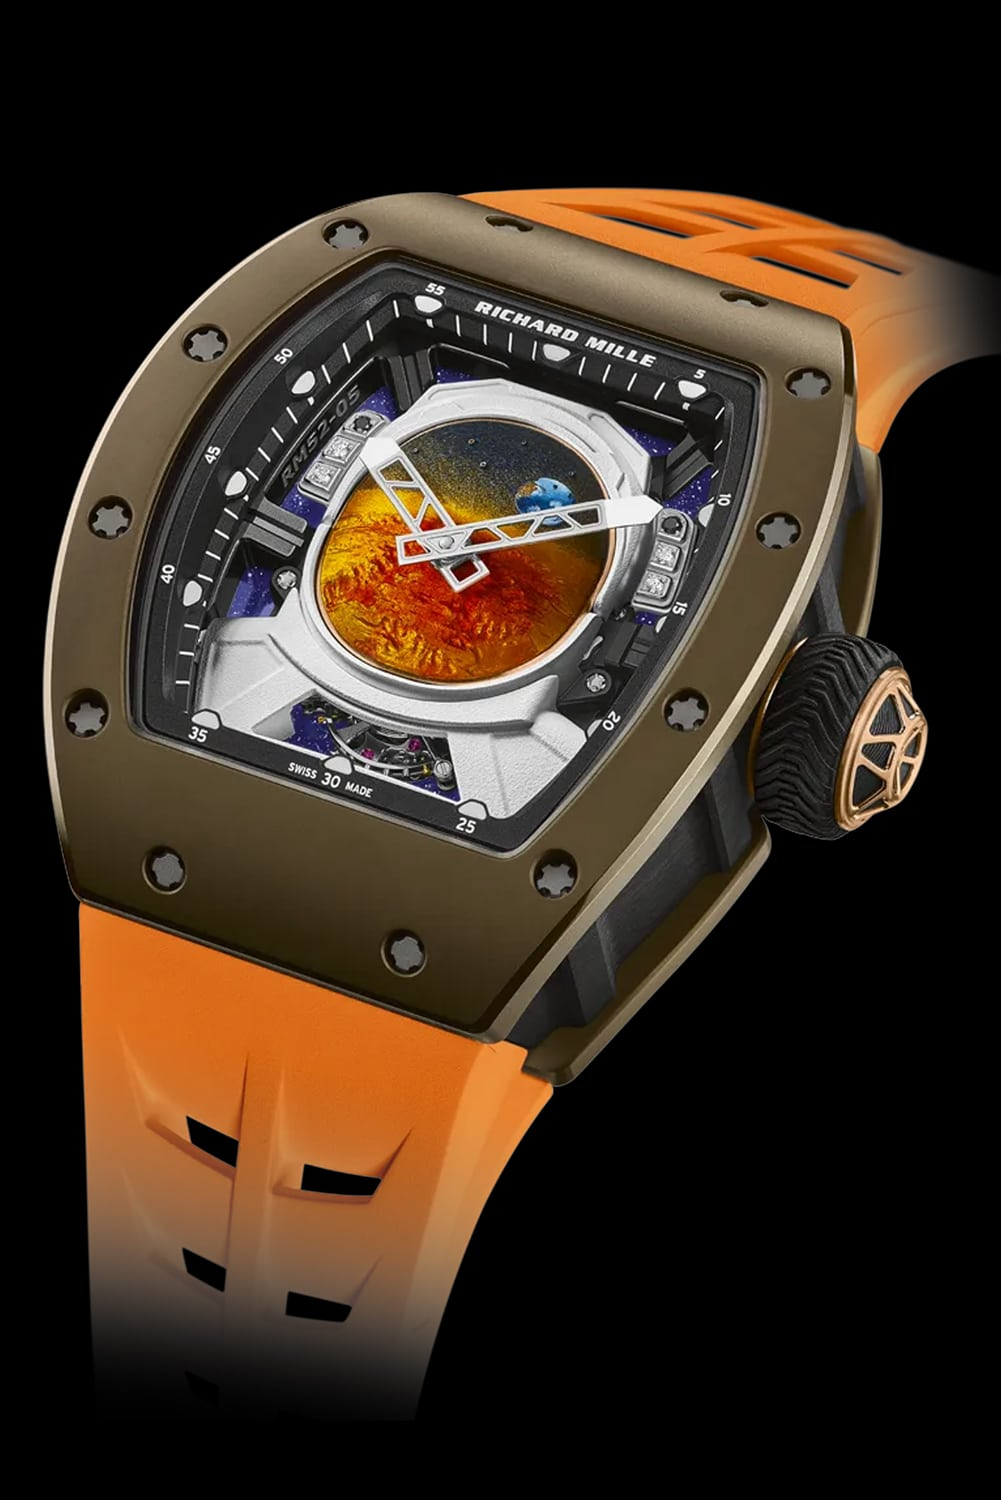 Pharrell Williams Collaborates With The Swiss Watchmaker Richard Mille Luxus Plus